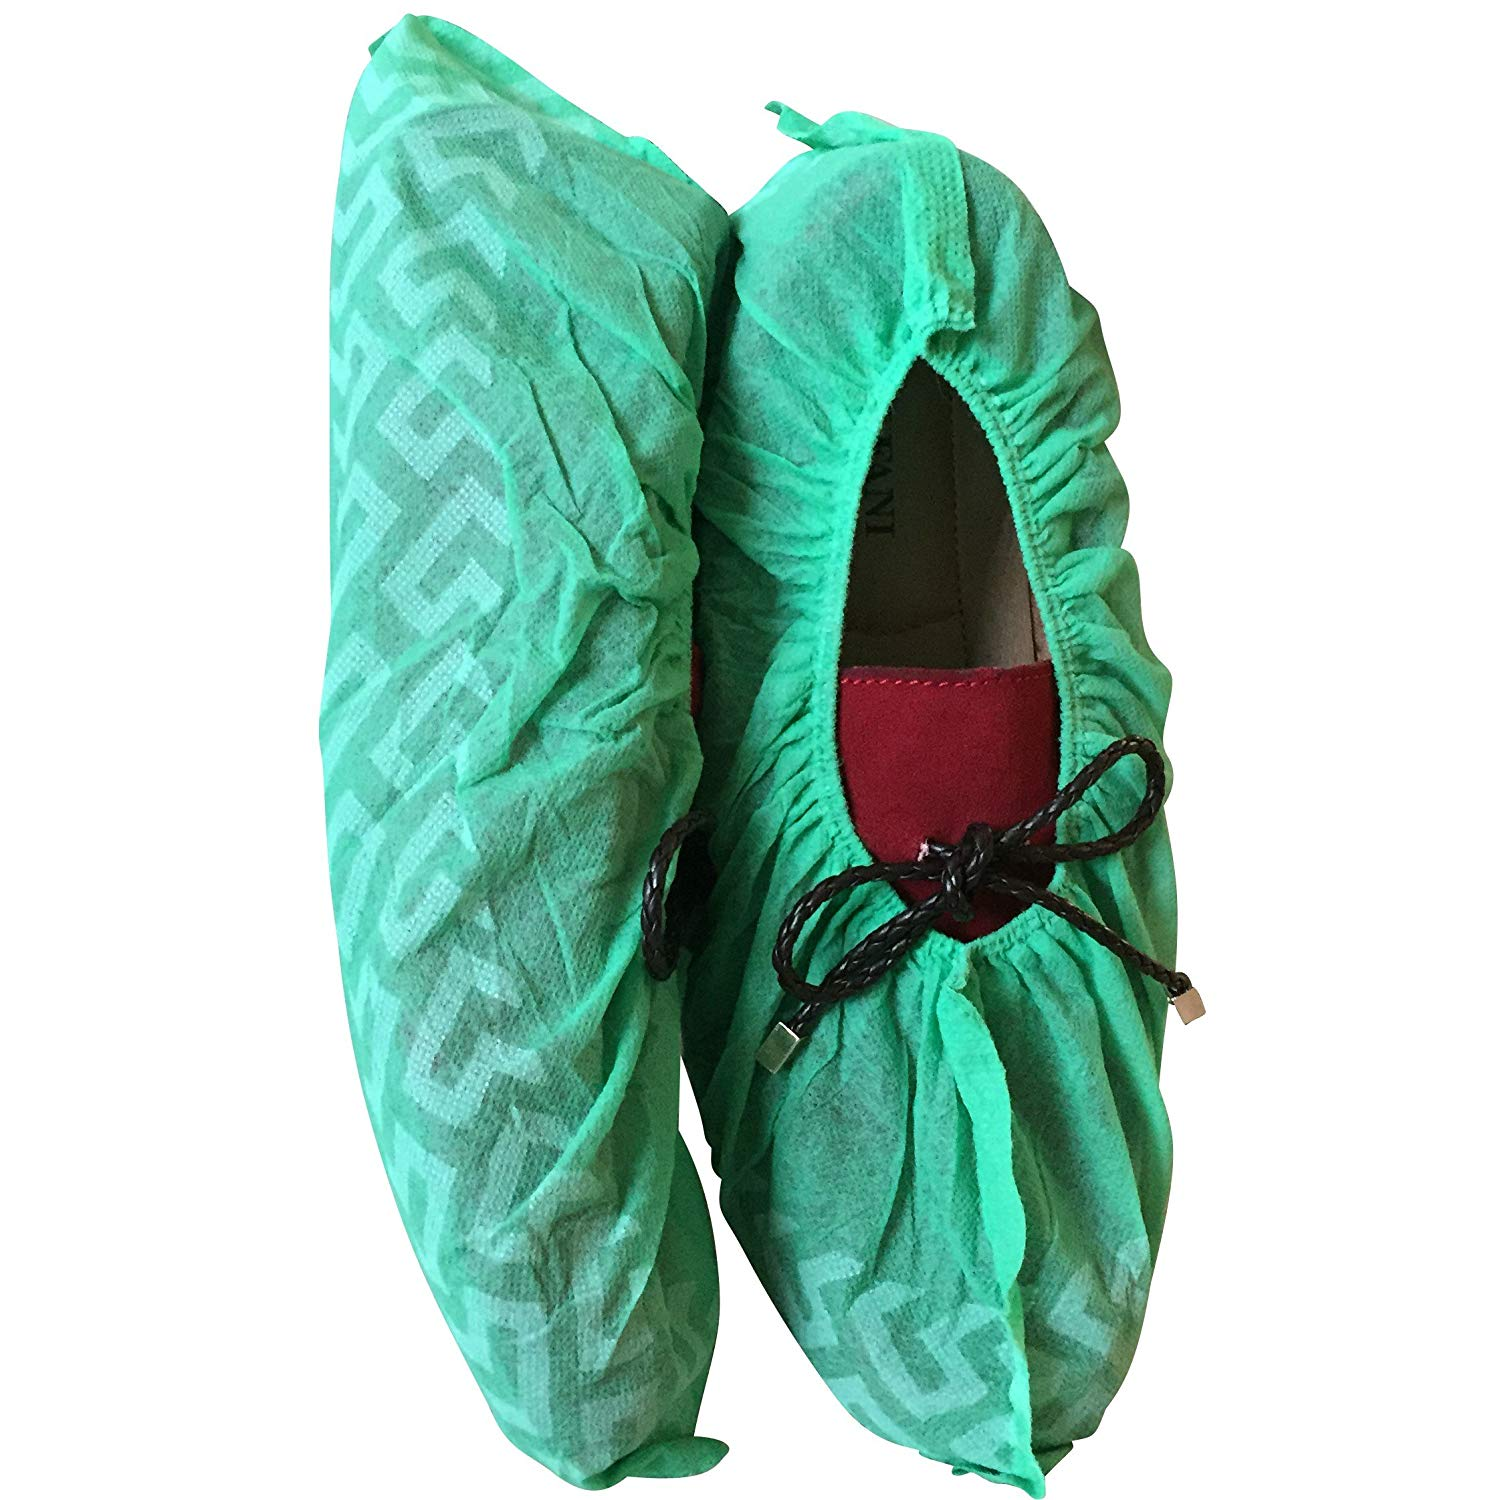 1 Pair Bowling Shoe Covers Shoe Shield Household Room Boot Covers